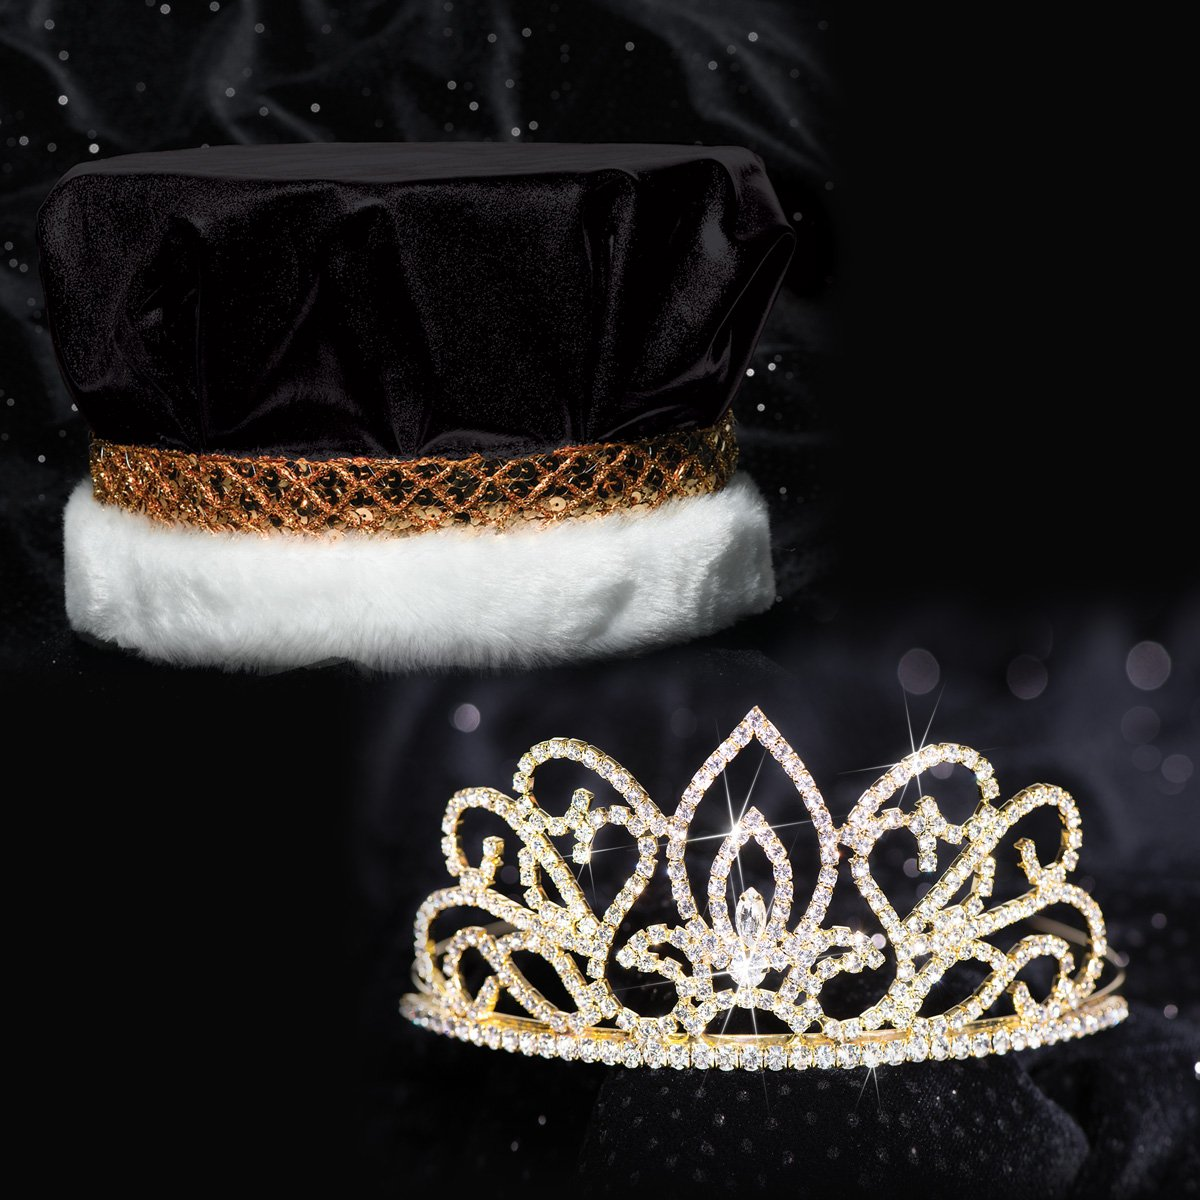 Golden Coronation Set, 2 1/4 inches High Gold Adele Tiara and Metallic Black Crown with Gold Braid, White Fur